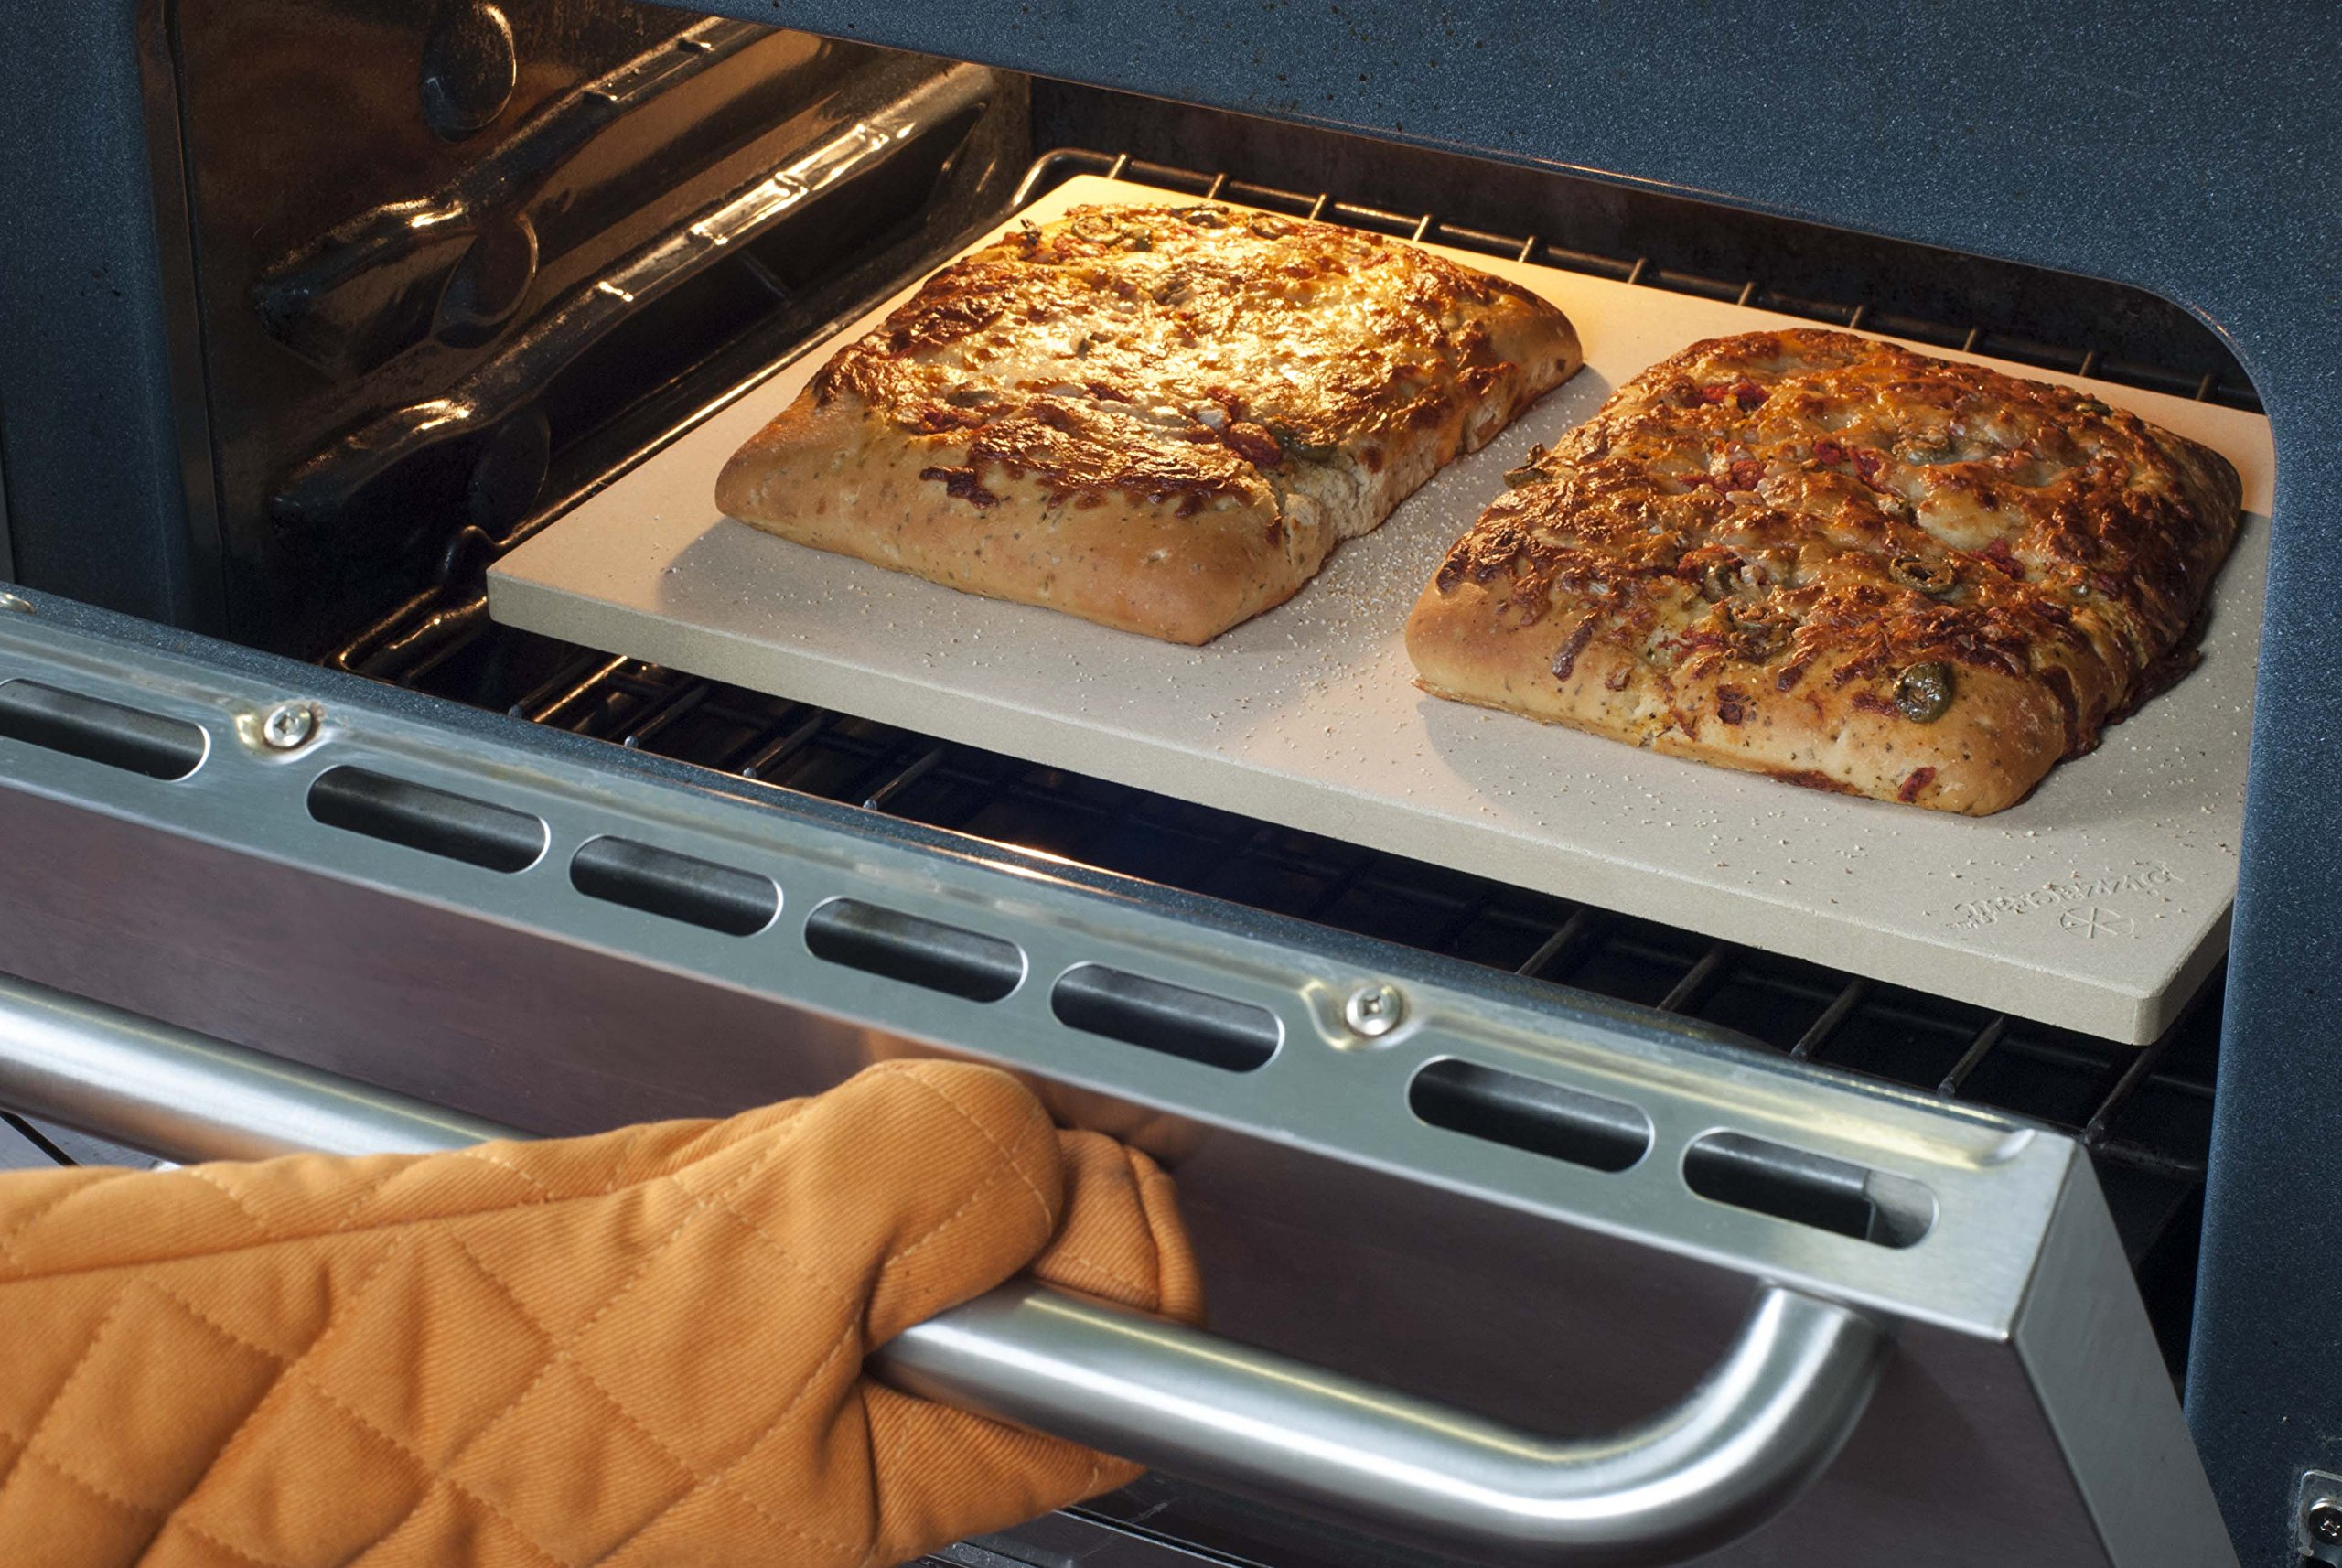 Pizzacraft PC9899 20 x 13.5 Rectangular ThermaBond Baking/Pizza Stone for Oven or Grill by Pizzacraft (Image #5)